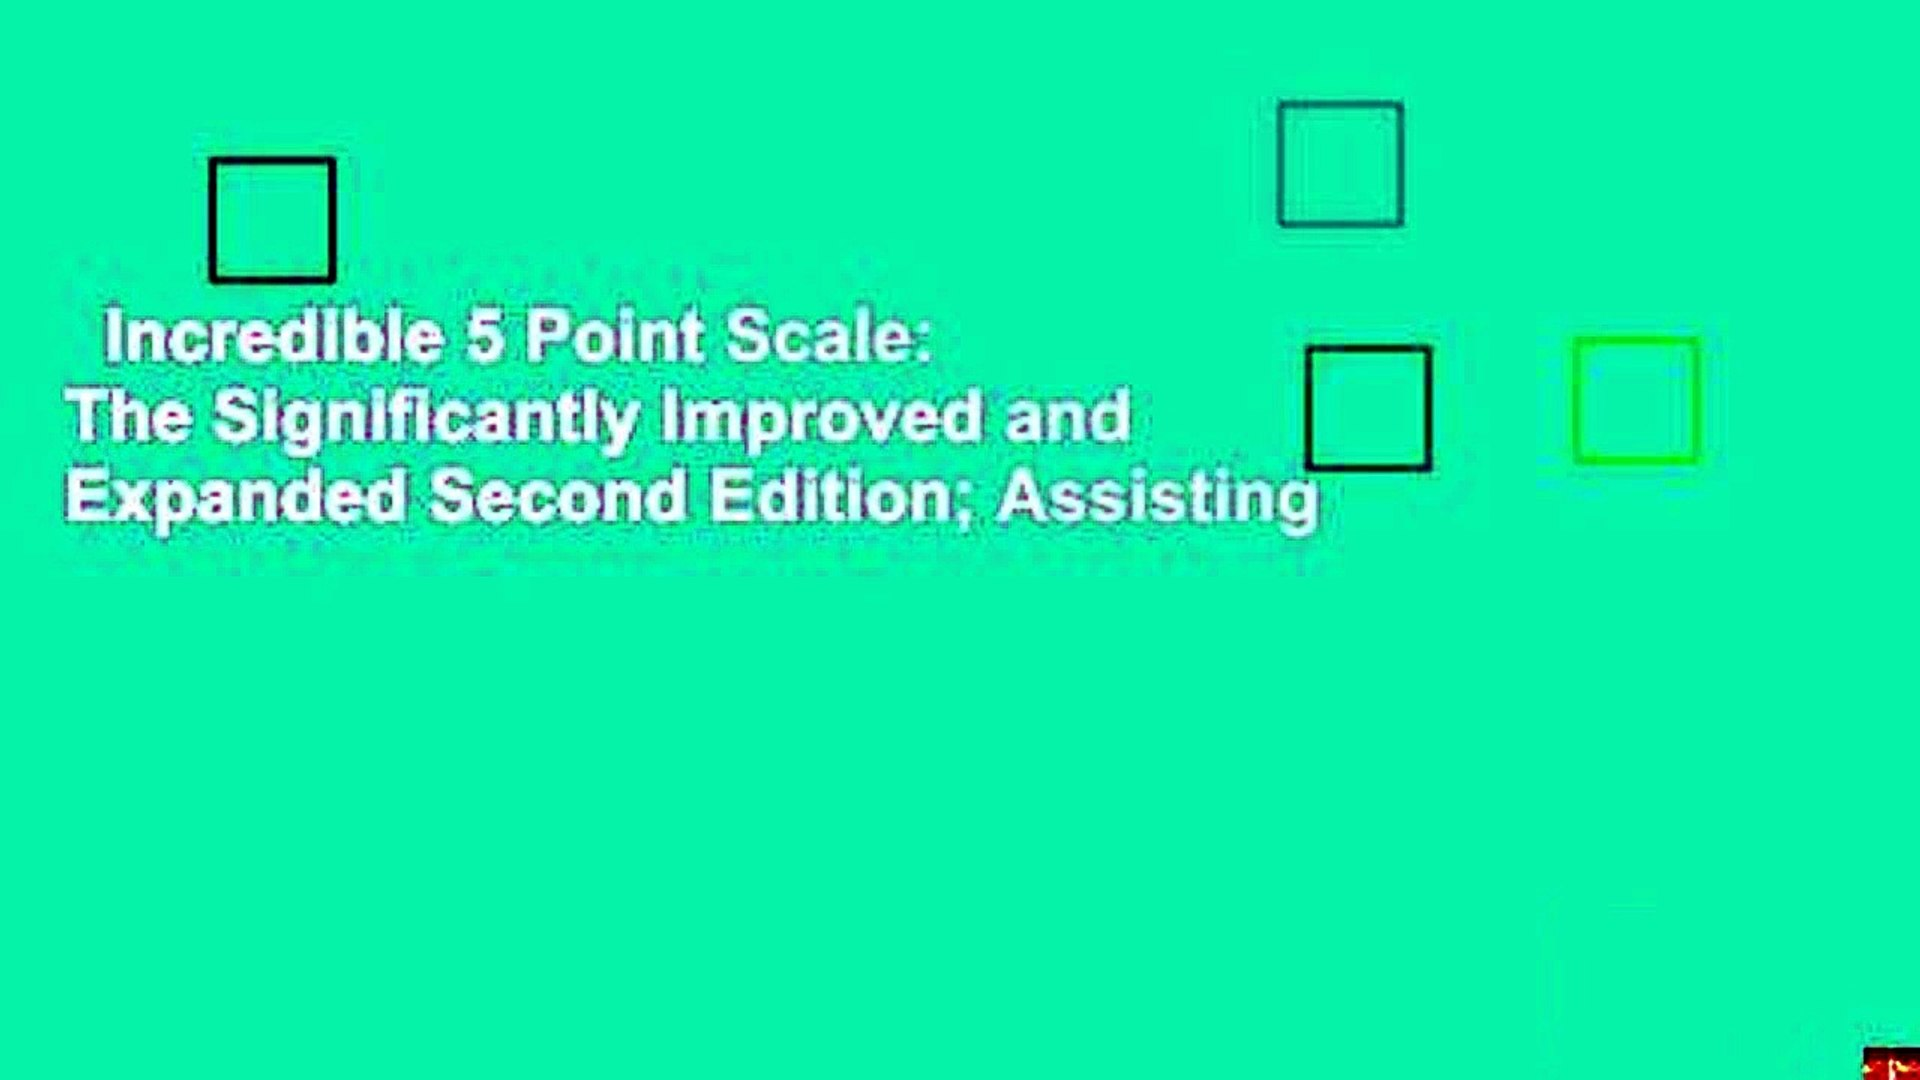 Incredible 5 Point Scale The Significantly Improved And Expanded Second Edition Assisting Video Dailymotion